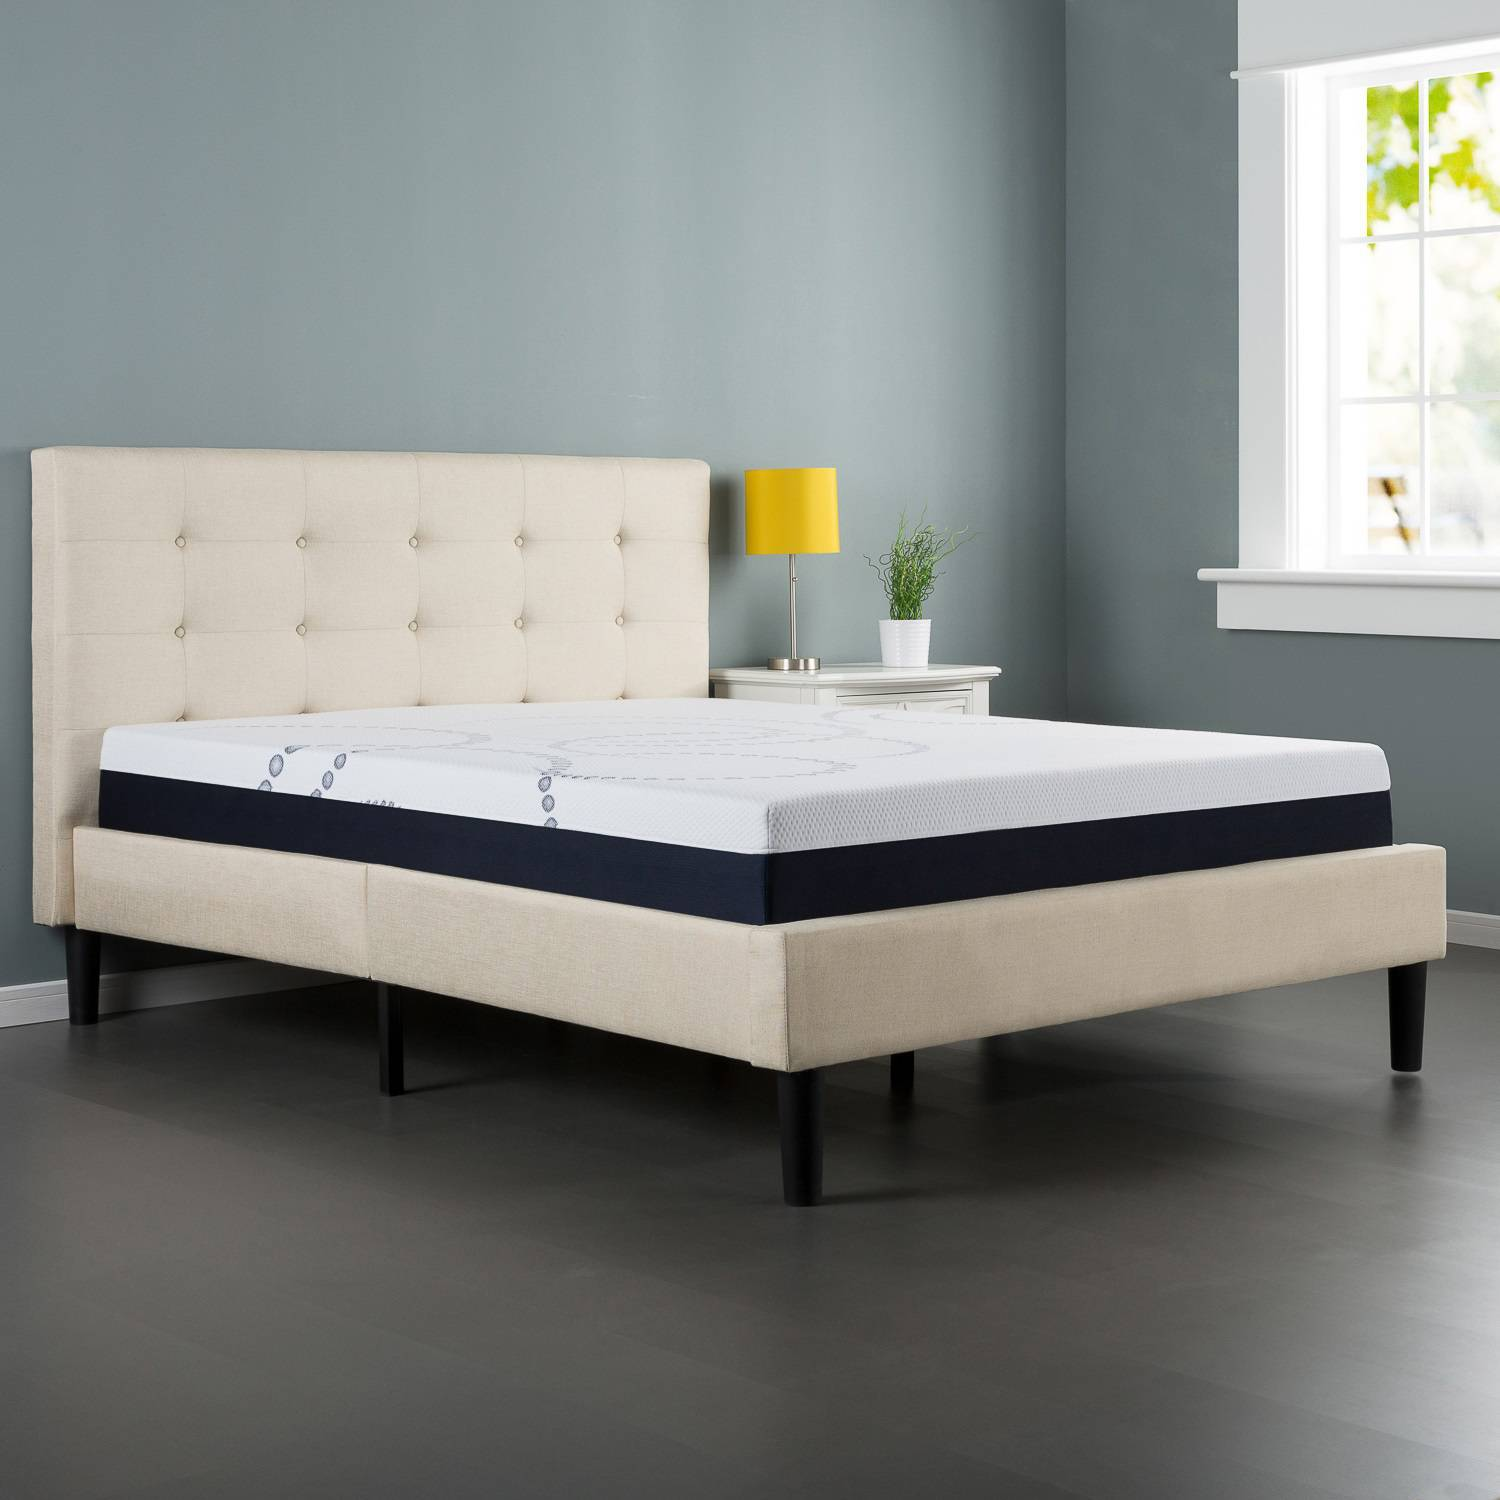 zinus upholstered button tufted platform bed with headboard and  - zinus upholstered button tufted platform bed with headboard and woodenslats  walmartcom